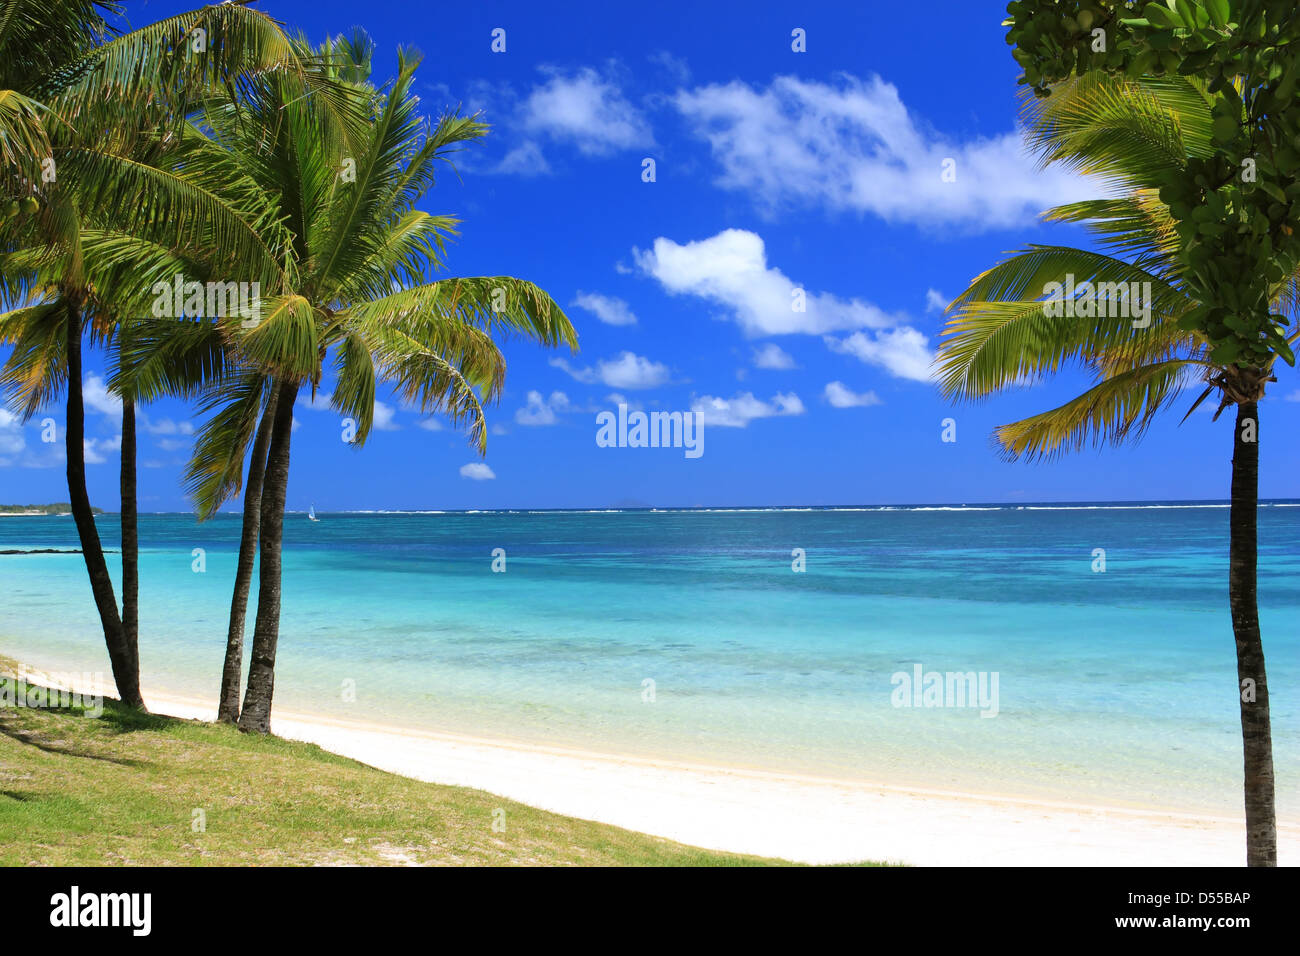 beautiful beach in Mauritius island with palms and ocean - Stock Image